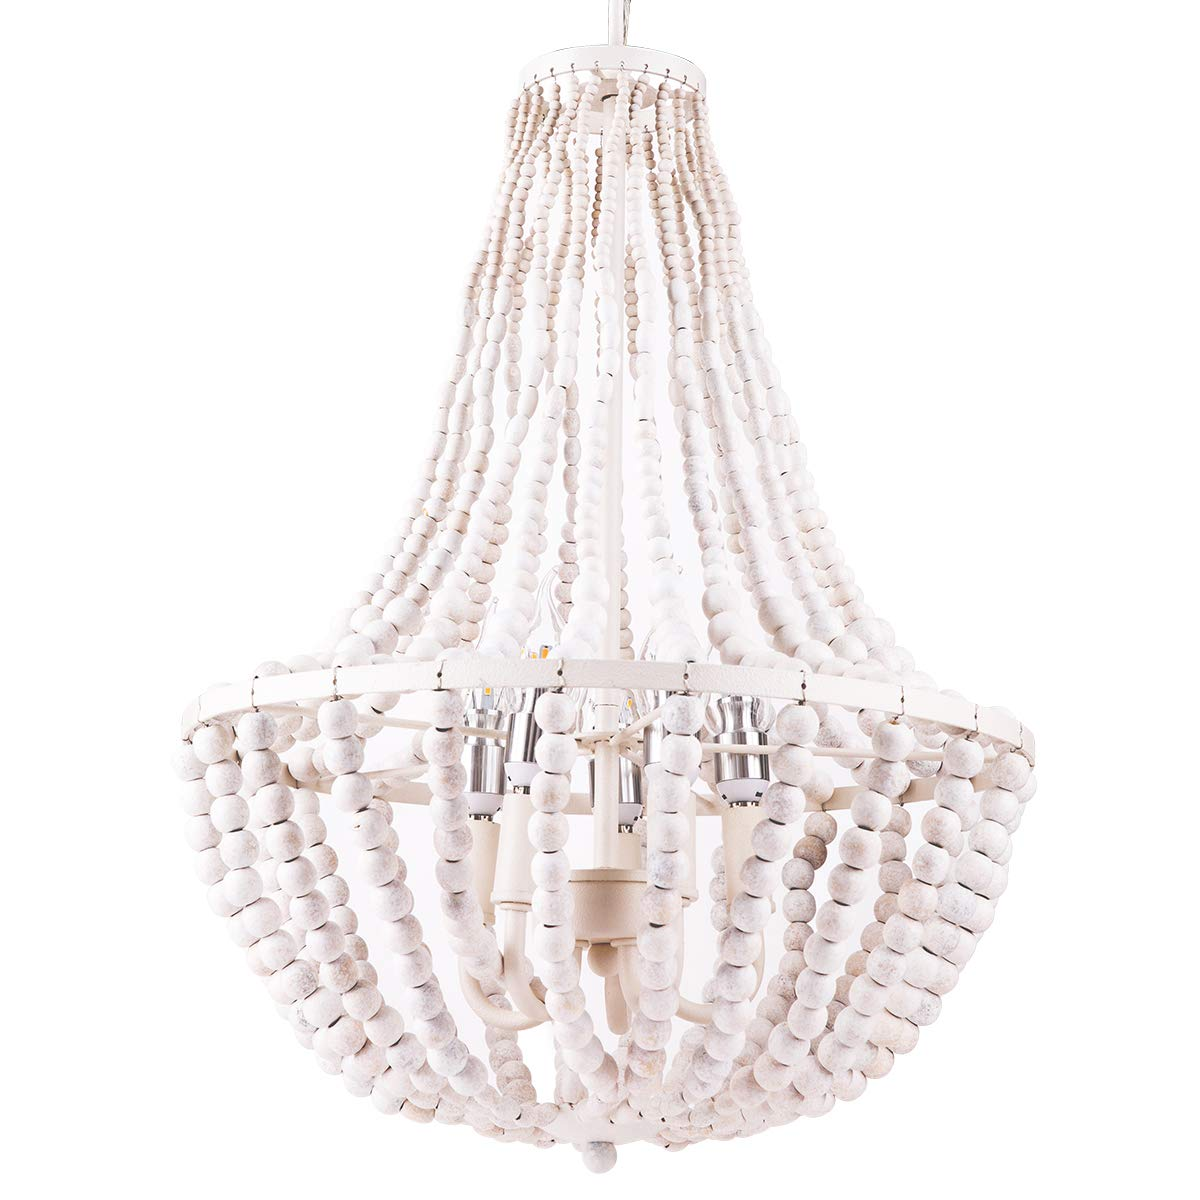 Beaded Chandelier, Morden Fort White Beaded Chandelier 5 Lights for Living Room/Bed Room/Dining Room